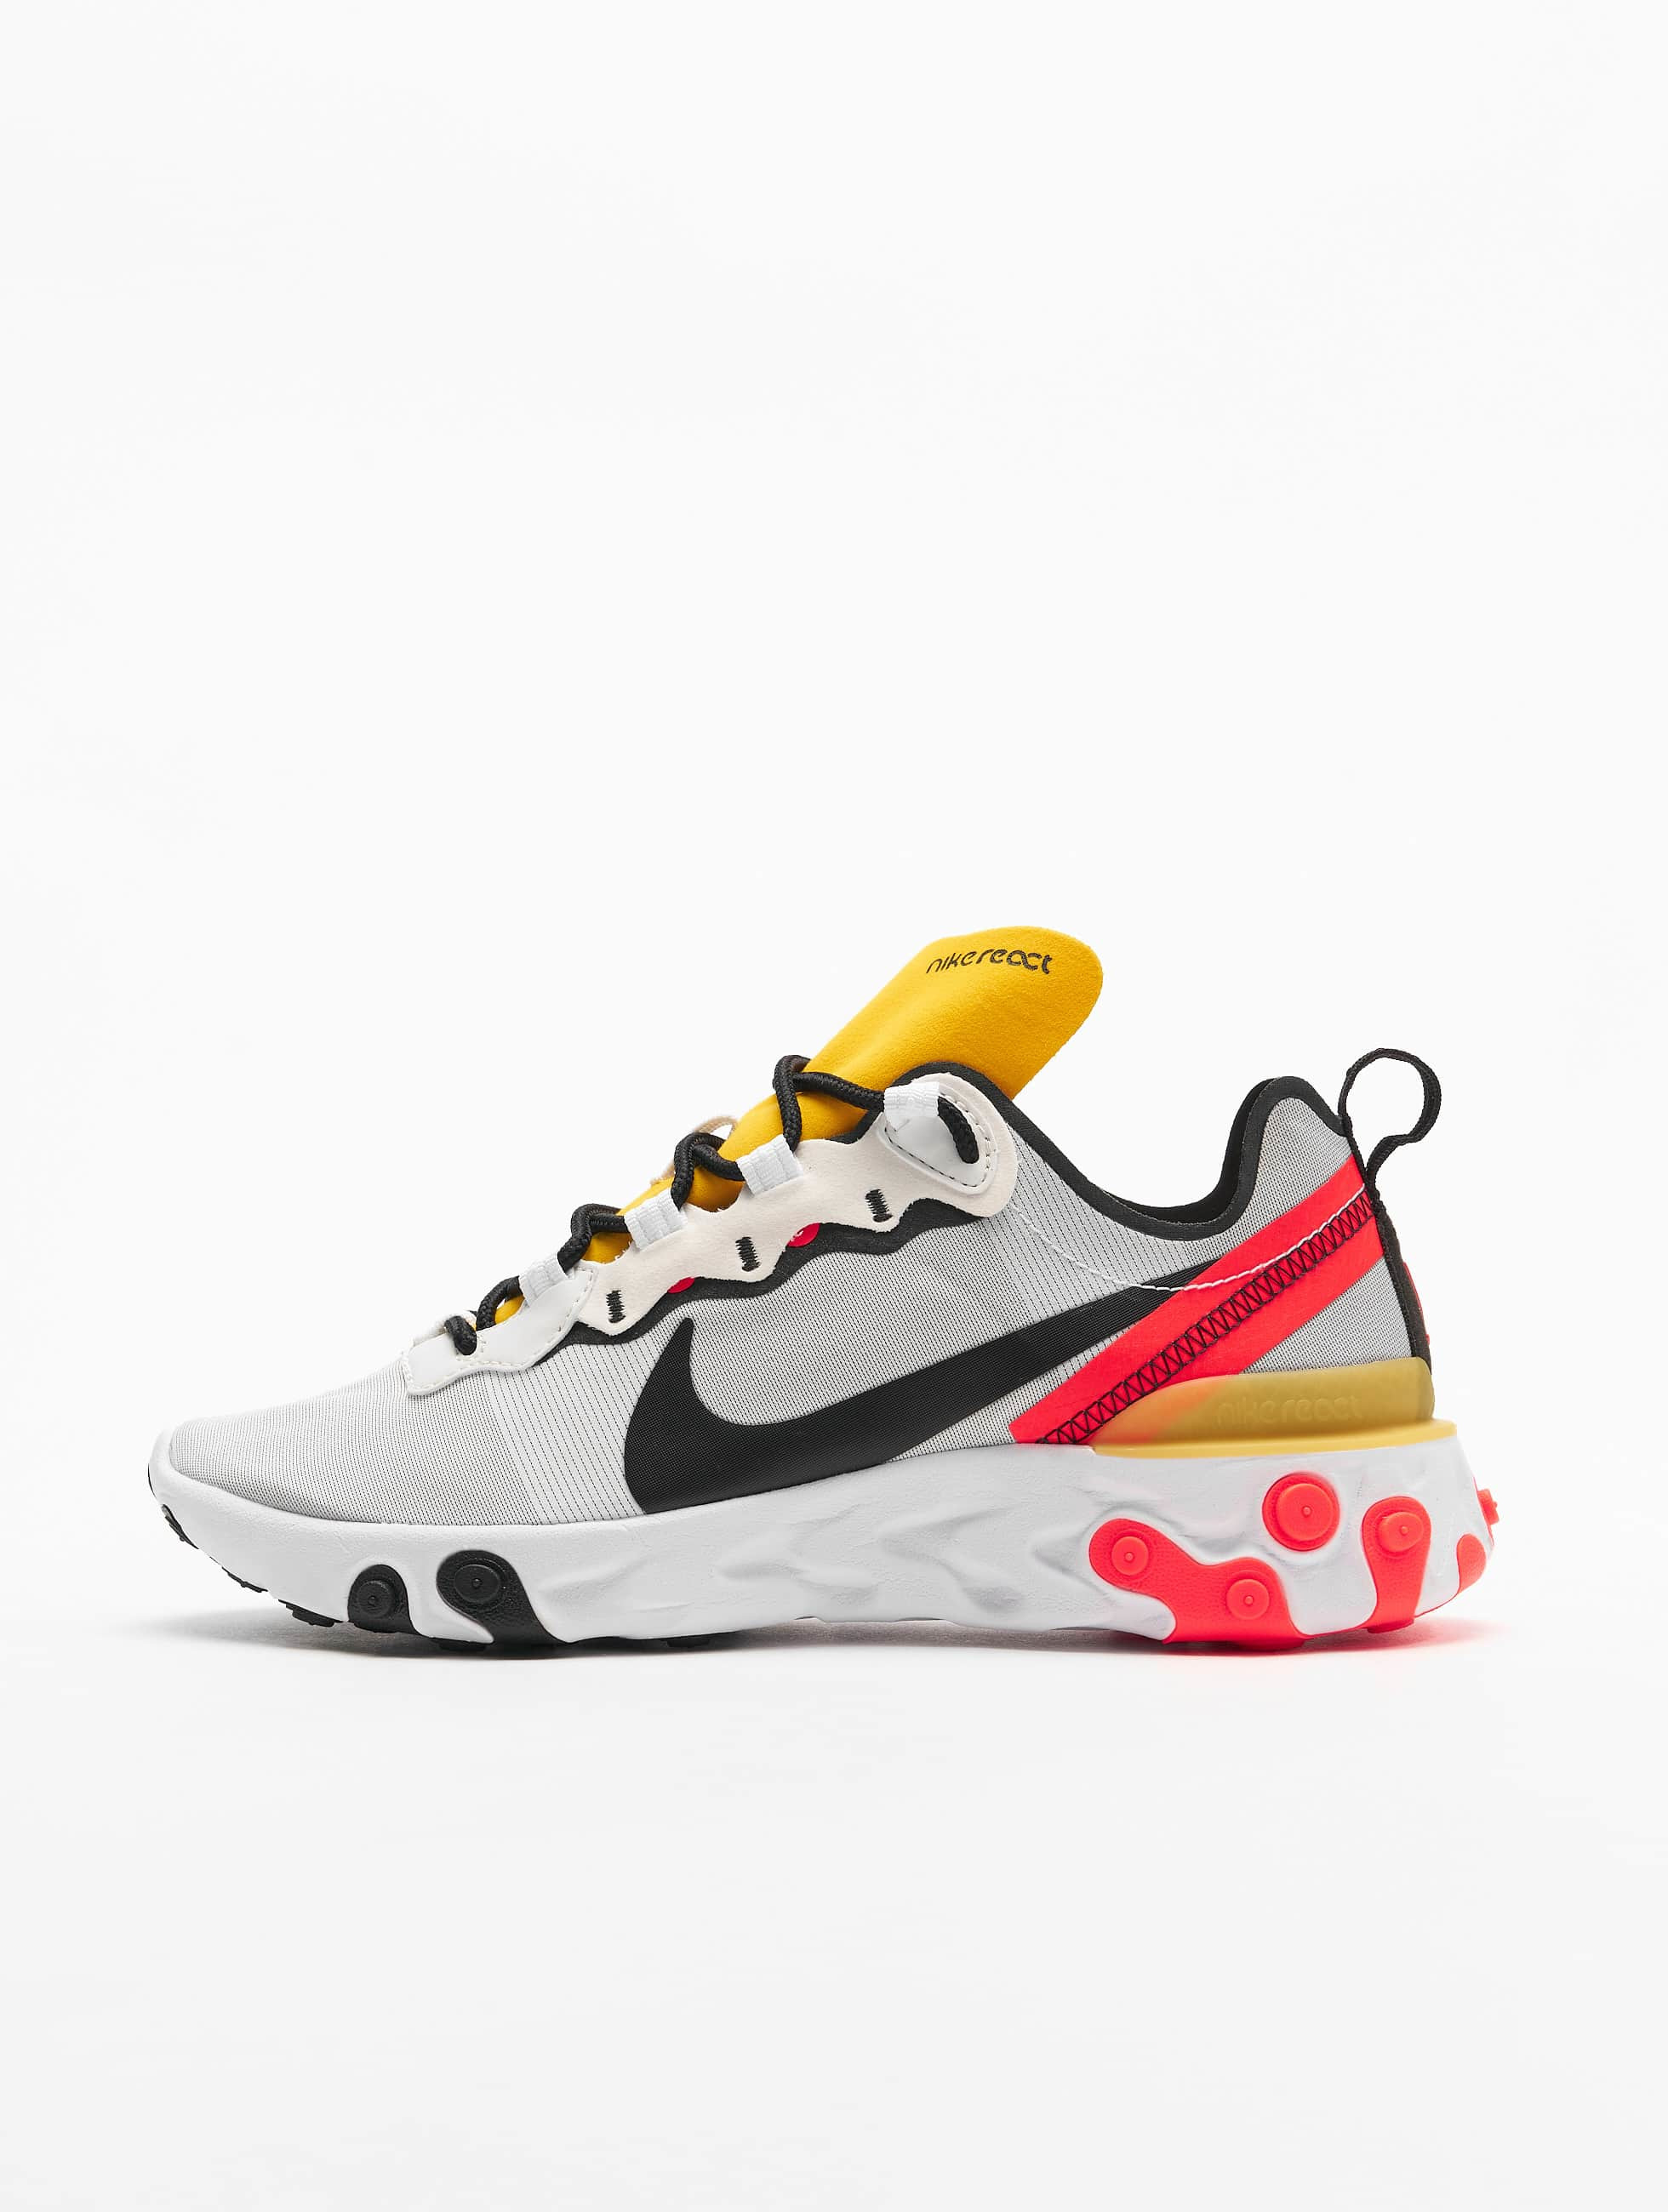 Nike React Element 55 Sneakers WhiteBlackBright Crimson